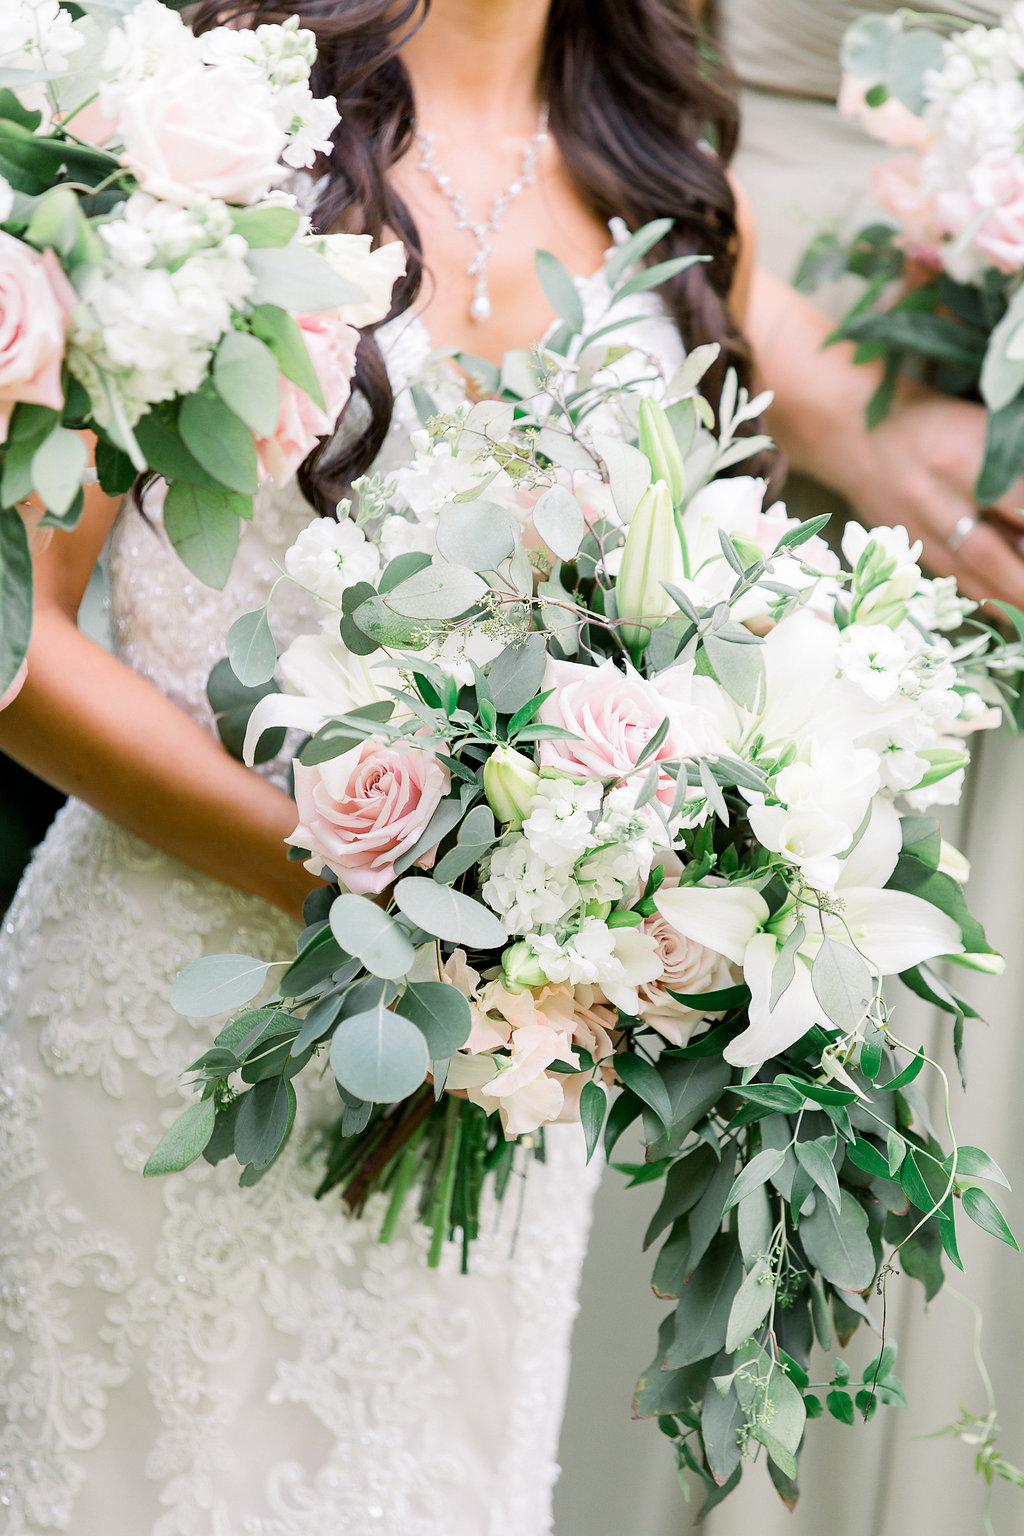 Bridal Bouquet in soft Blush and White with lots of lush foliage.